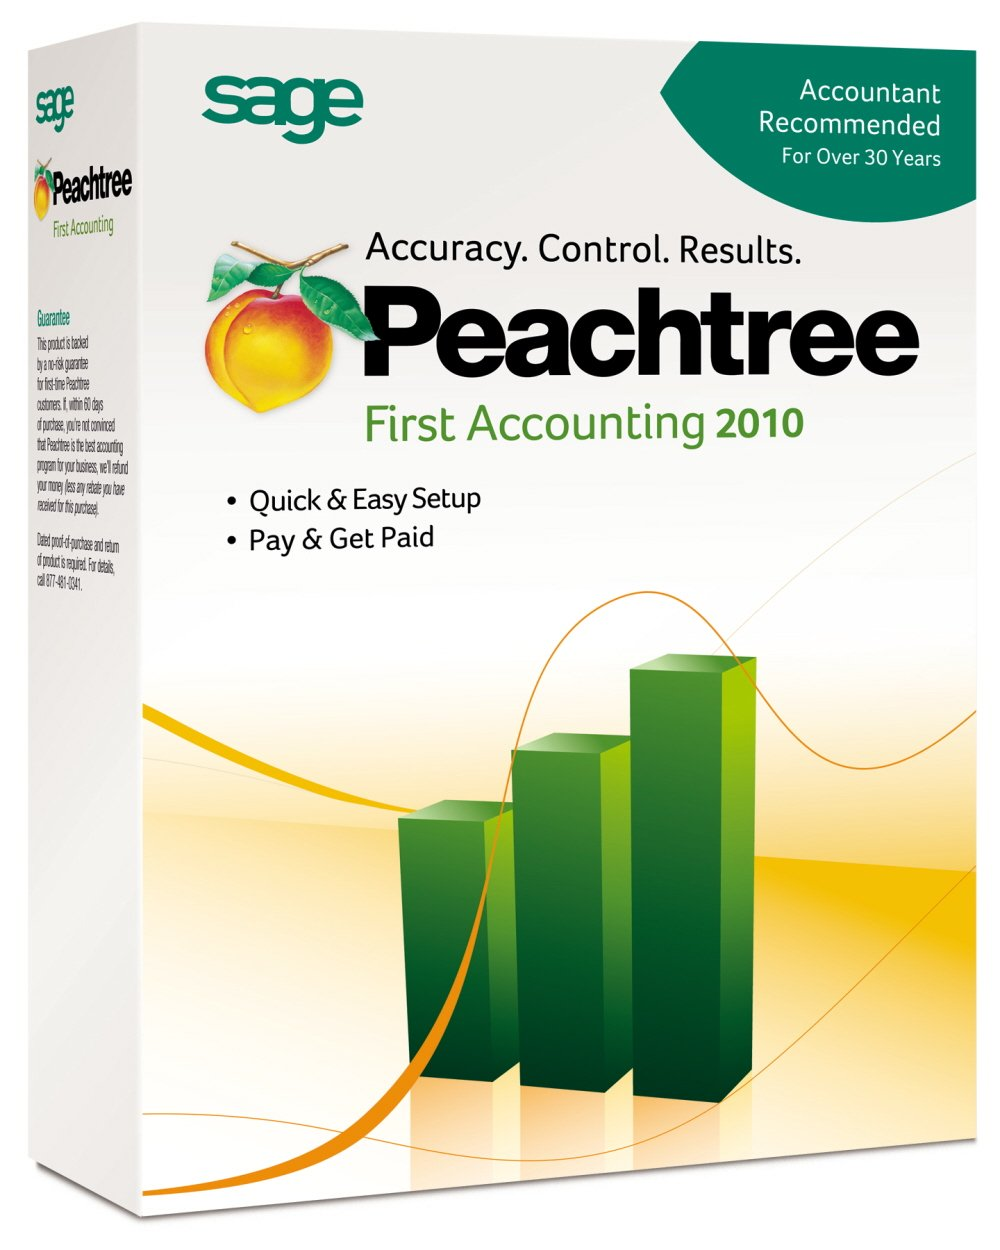 Peachtree By Sage First Accounting 2010